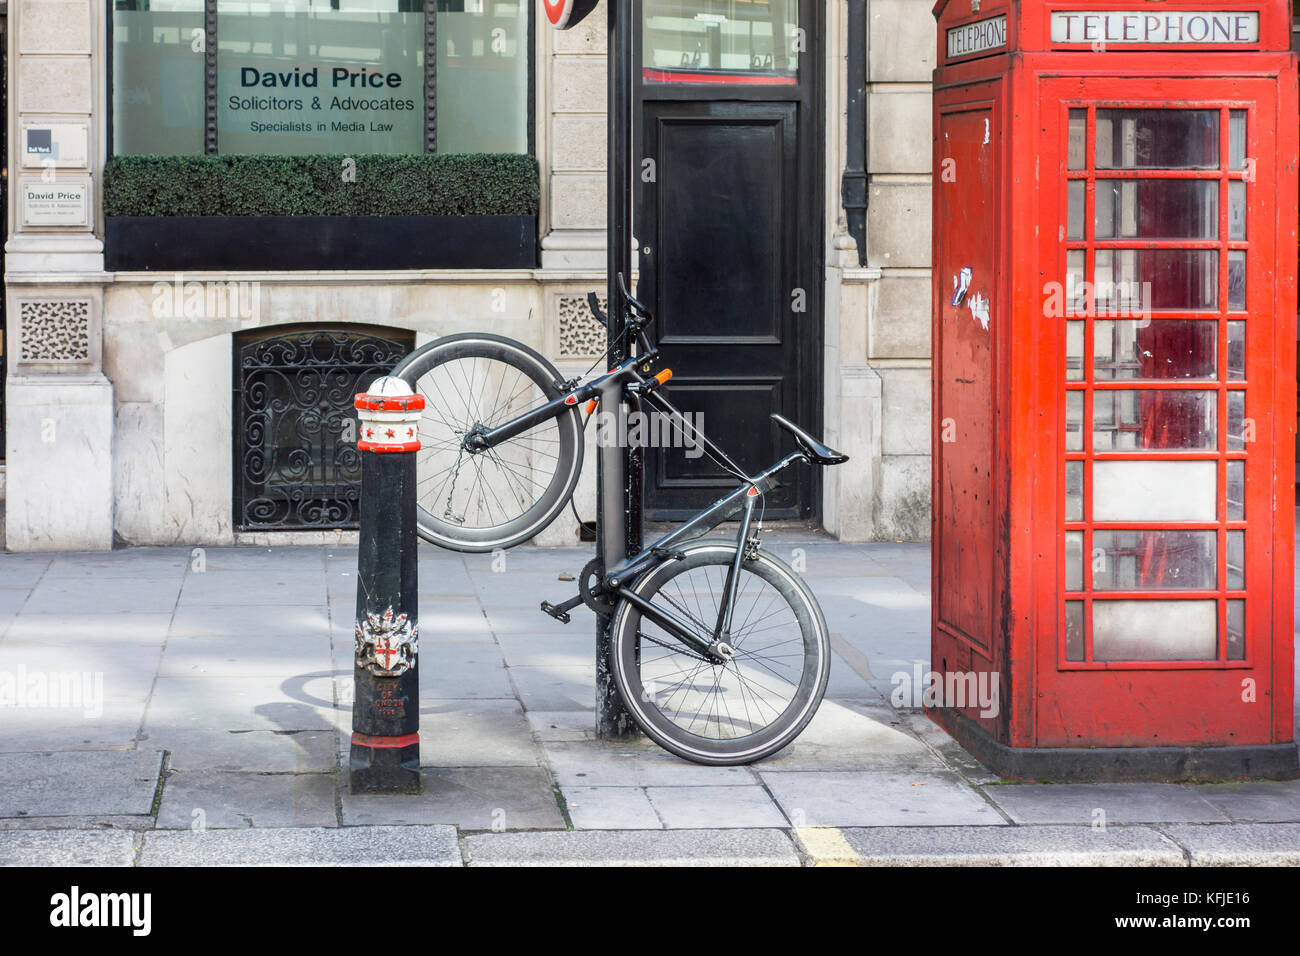 Bike parked locked secured to a post bollard next to a red telephone box, City of London, UK - Stock Image